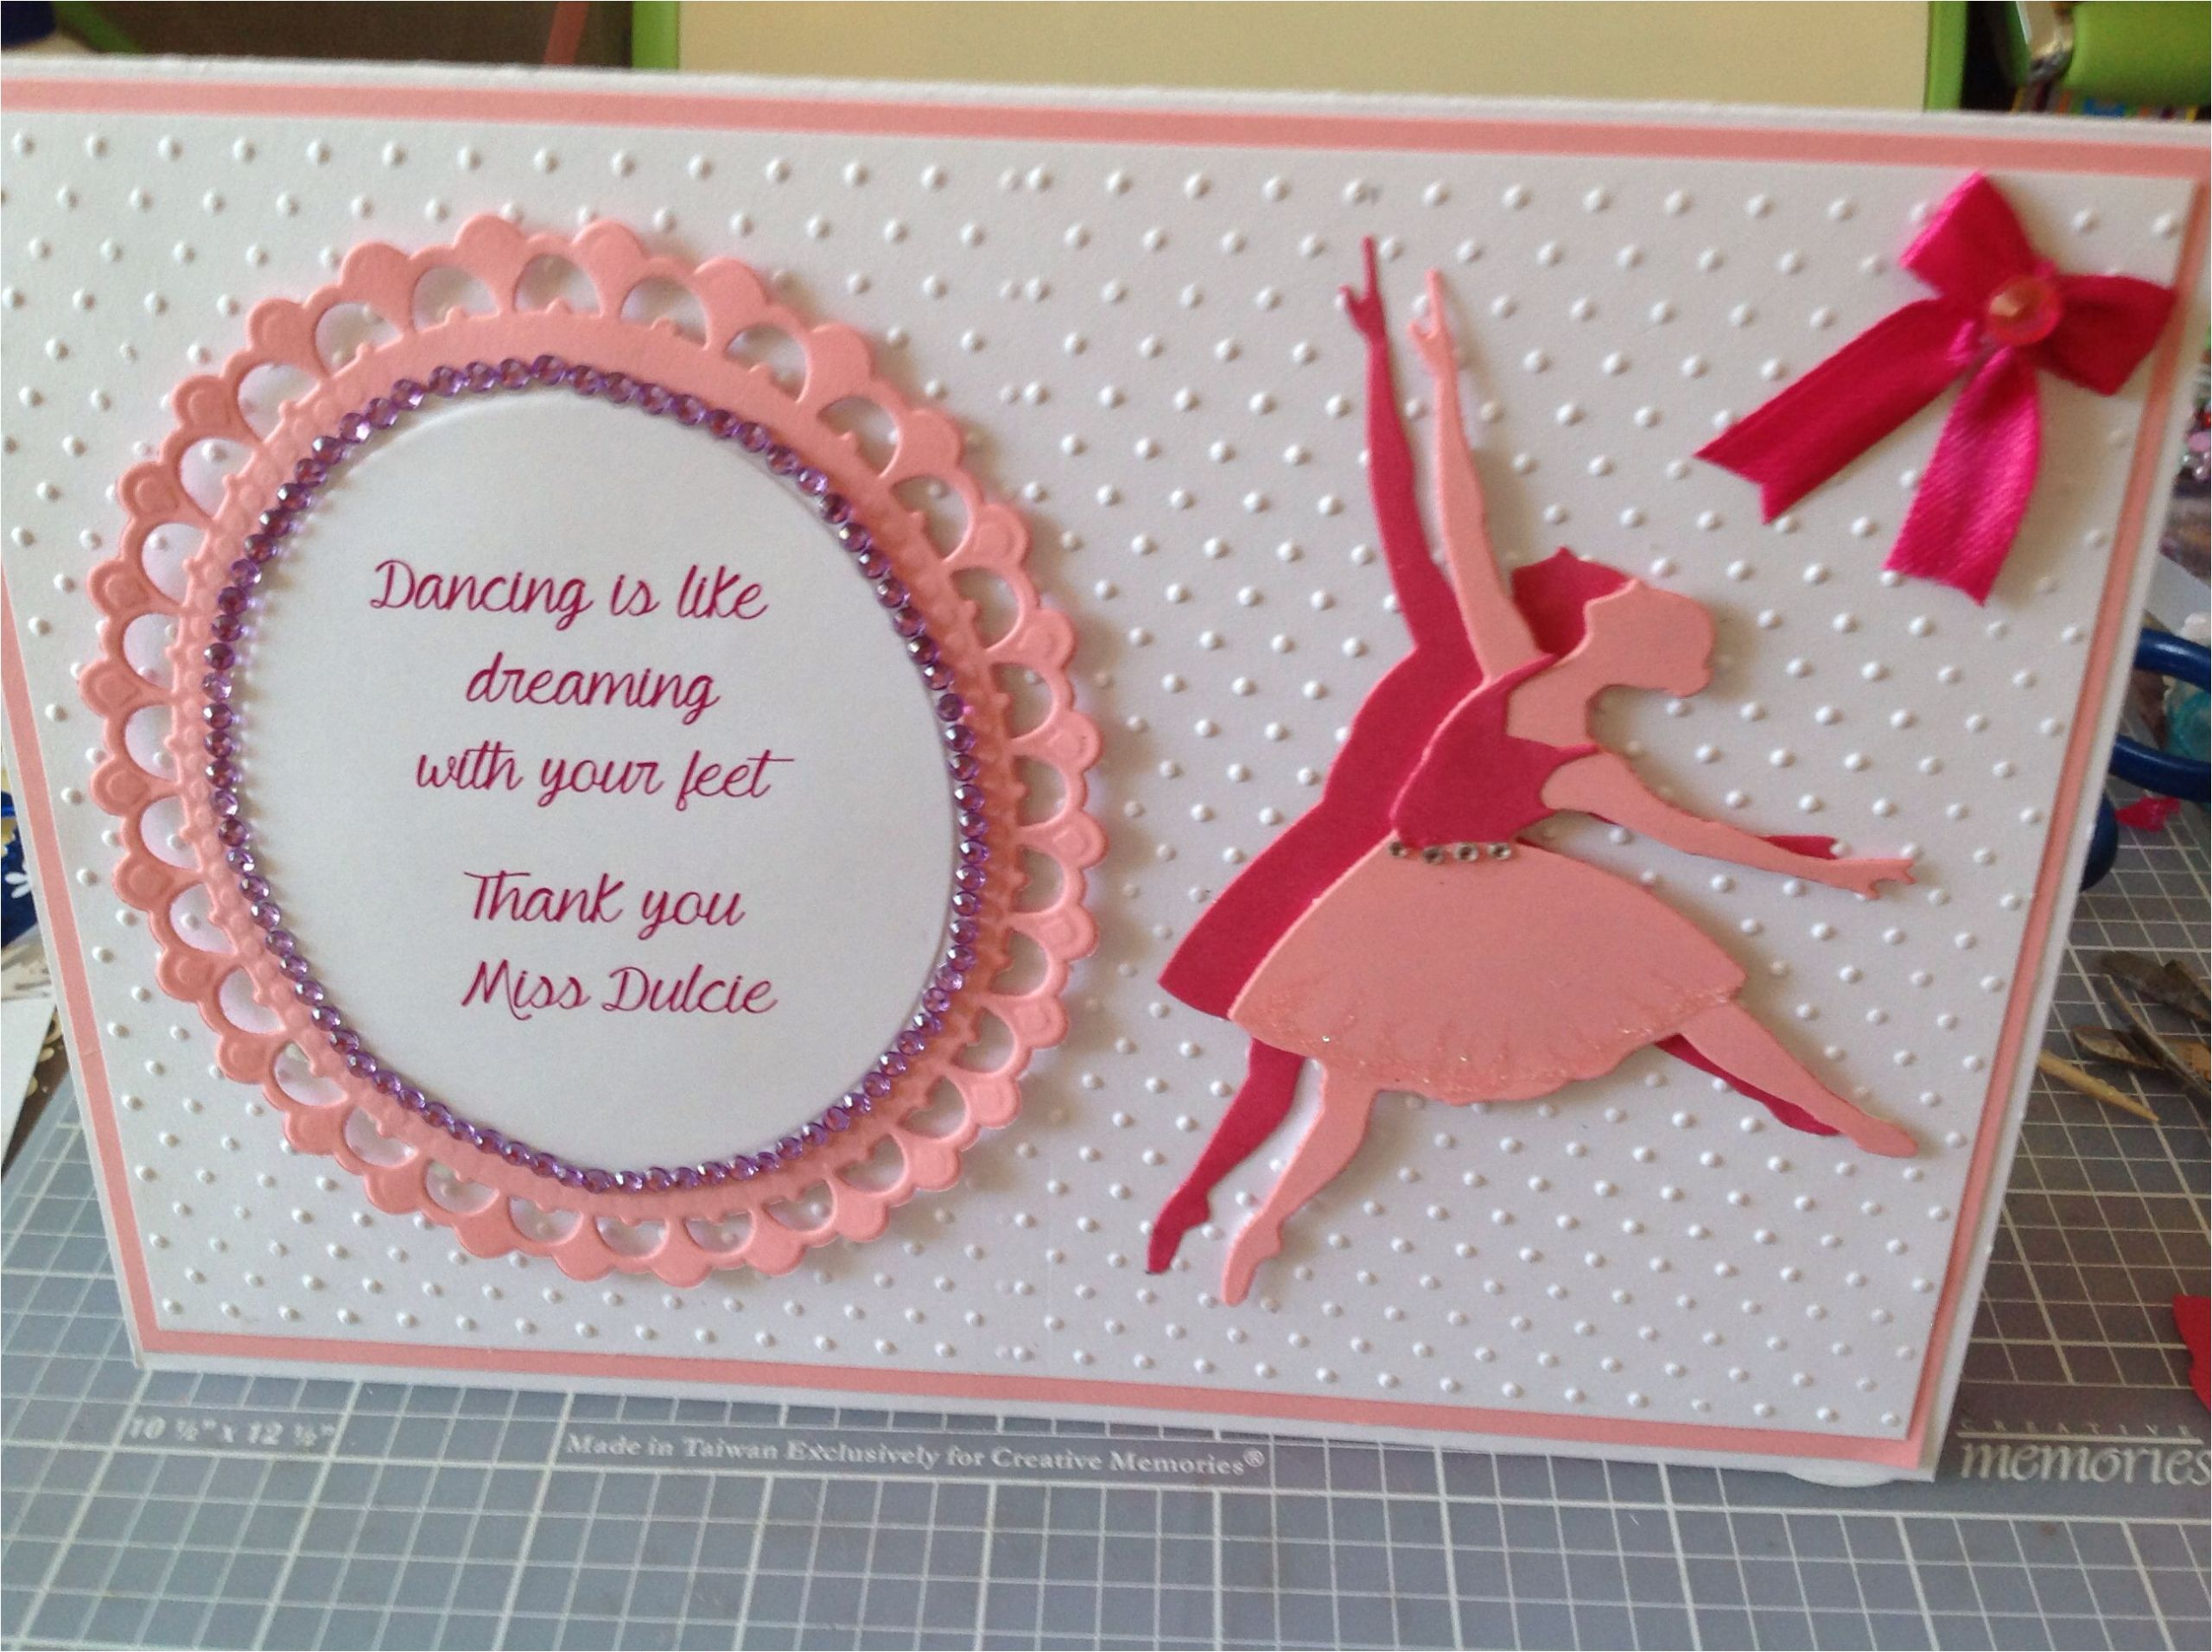 Thank You Dance Teacher Card Thank You Dance Teachers Card with Images Greeting Cards